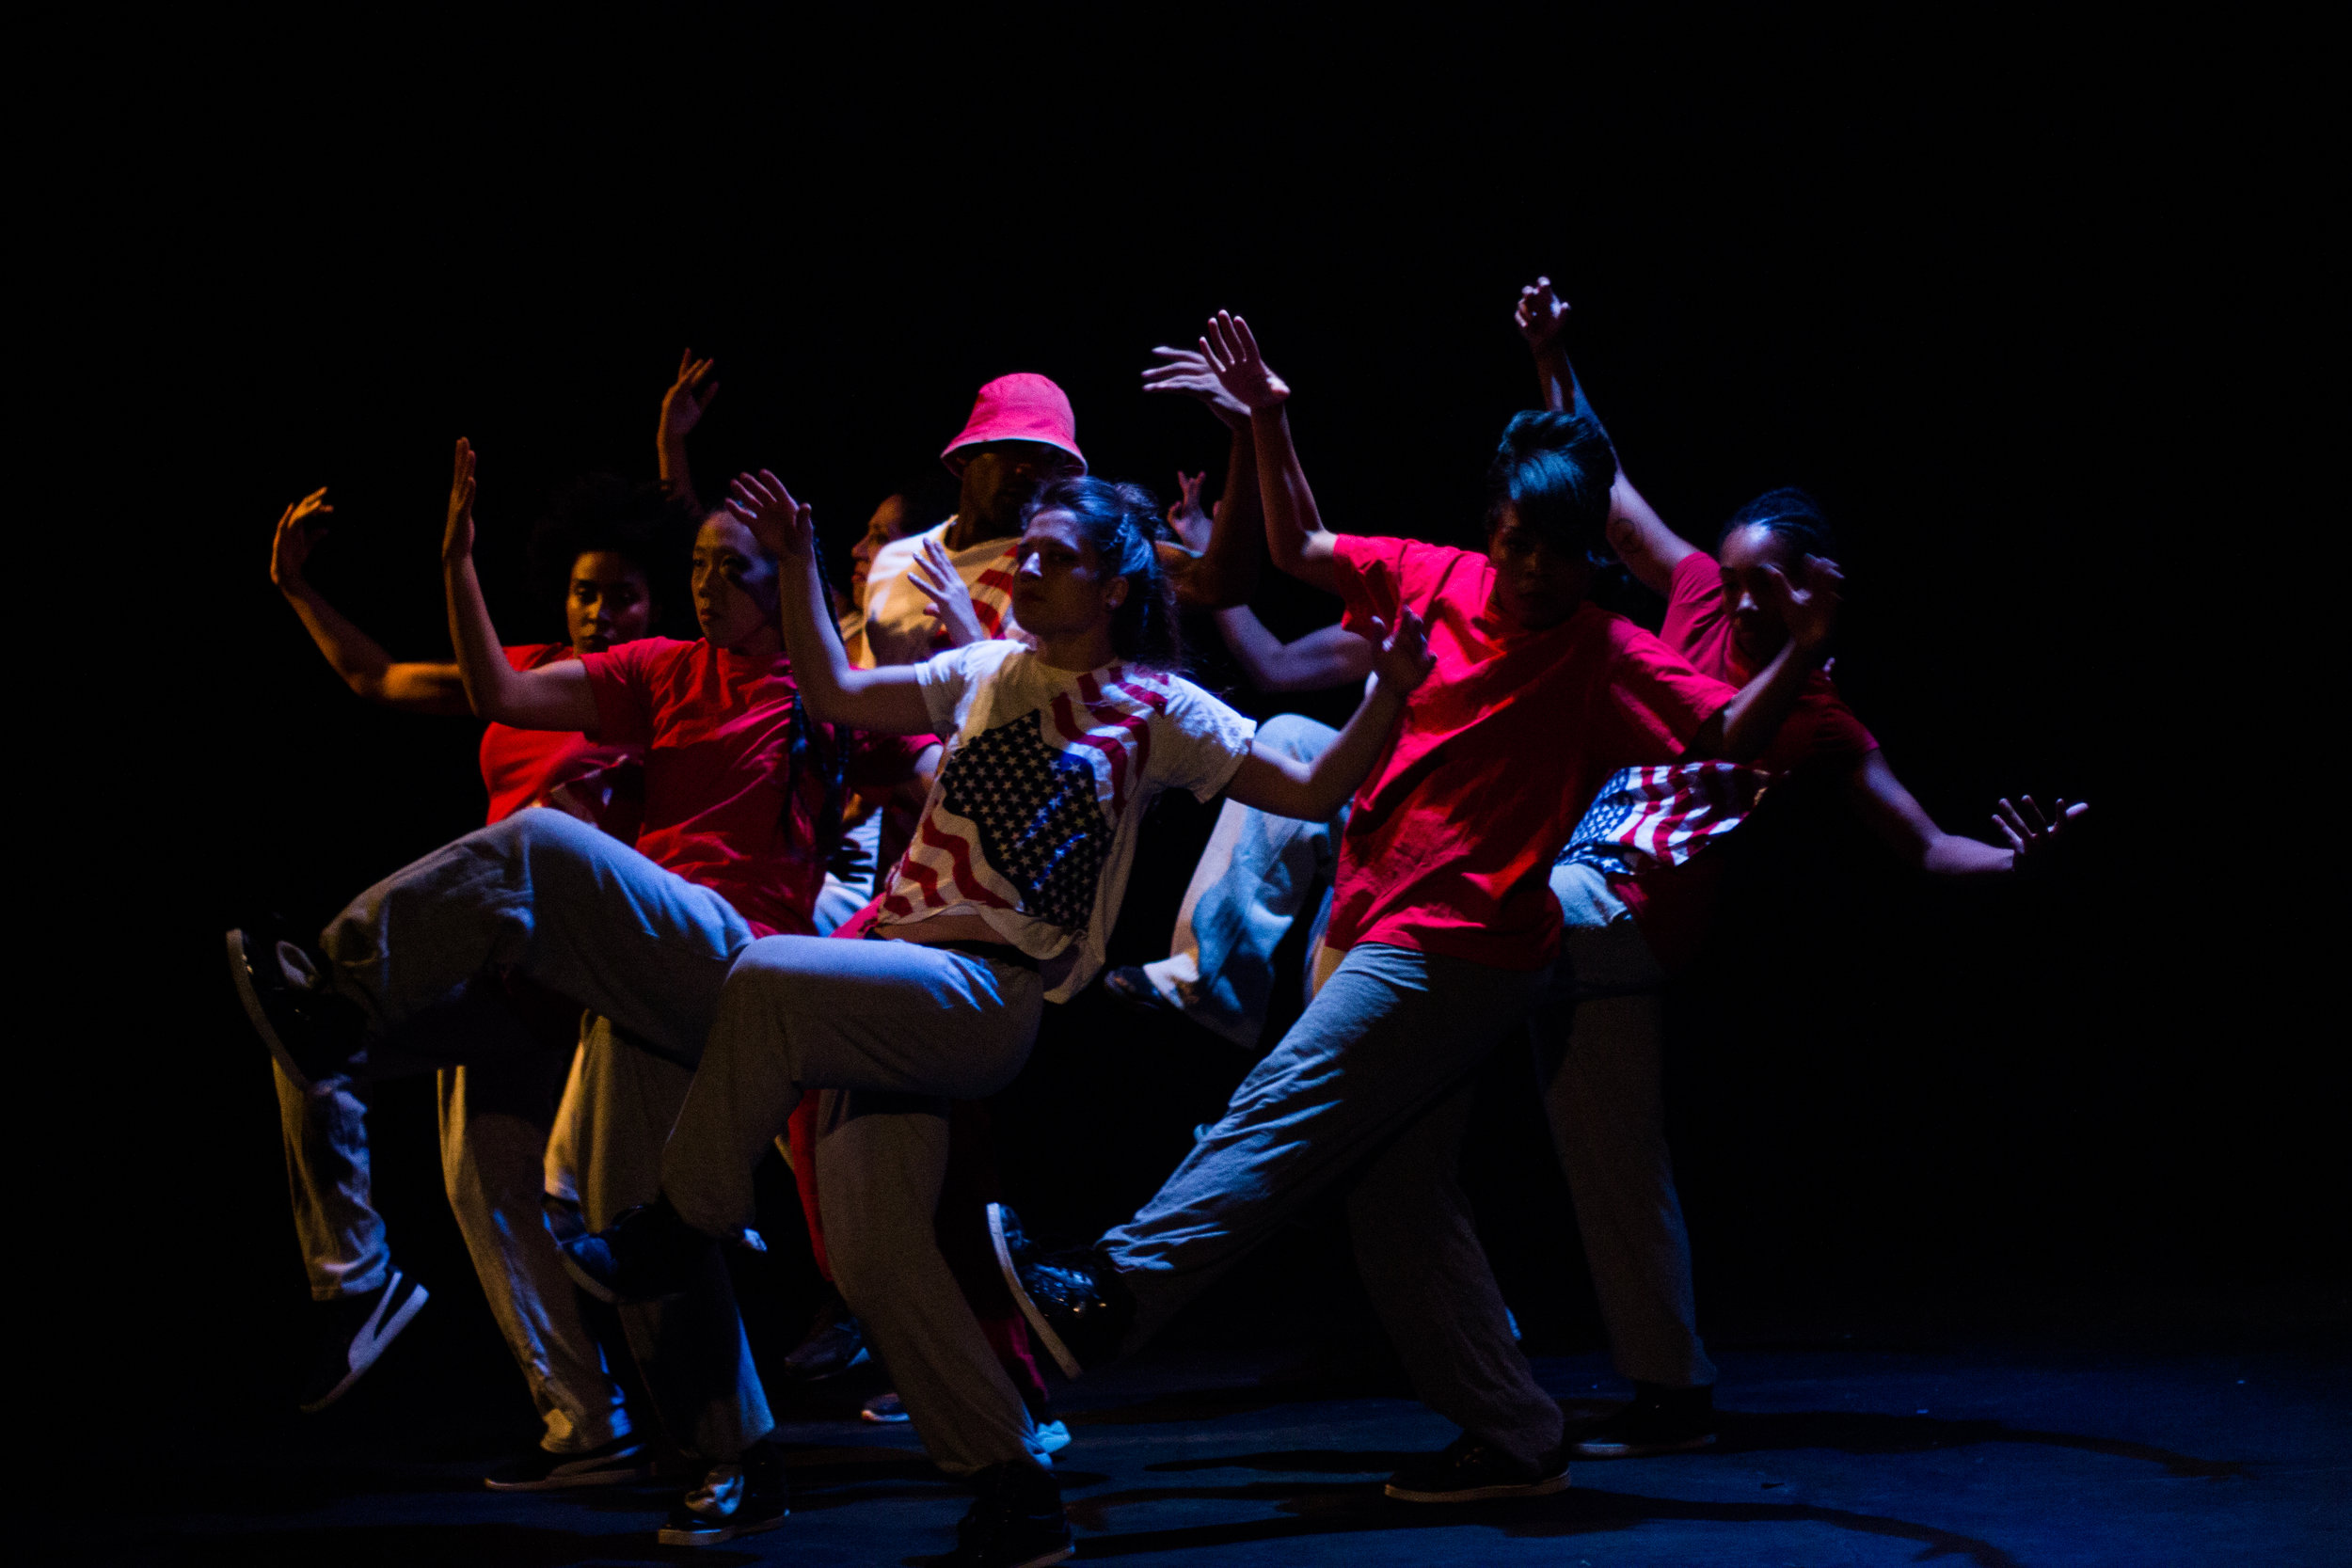 - Technical skills in Hip-Hop Dance foundation (Popping, Booglaoo, Locking, Rocking, Breaking, & Party Dance) and their integration into the execution of choreography